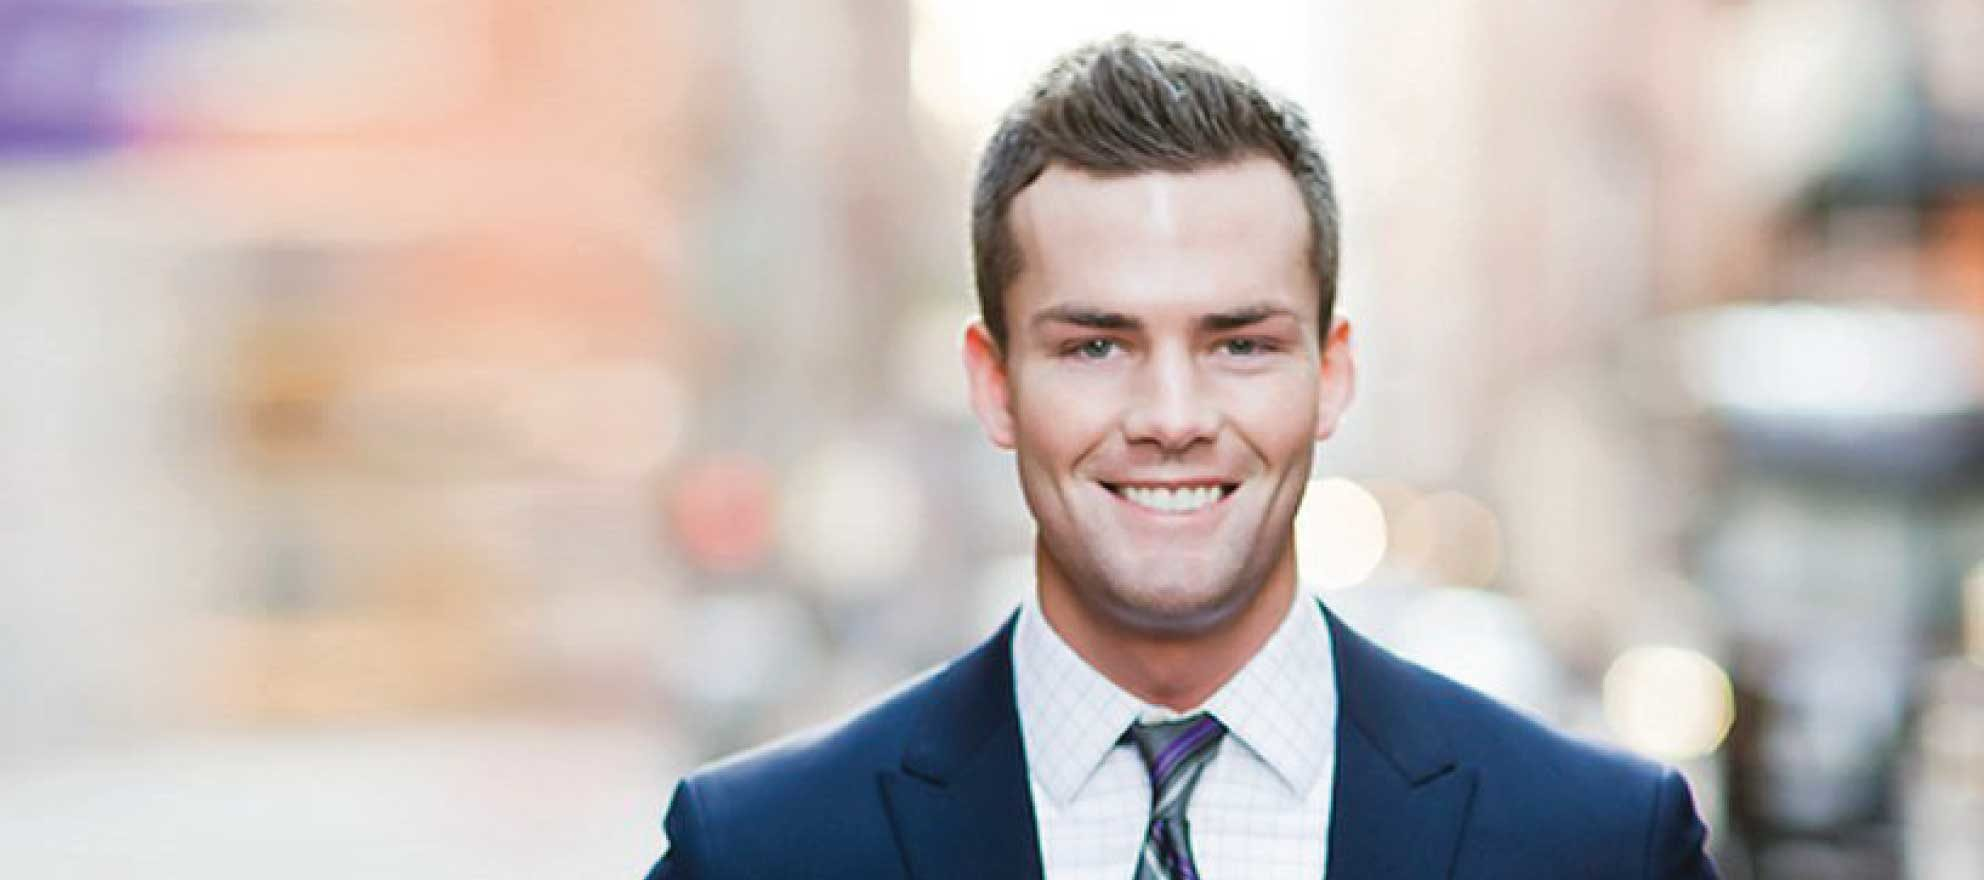 Interview with Ryan Serhant from 'Million Dollar Listing New York'